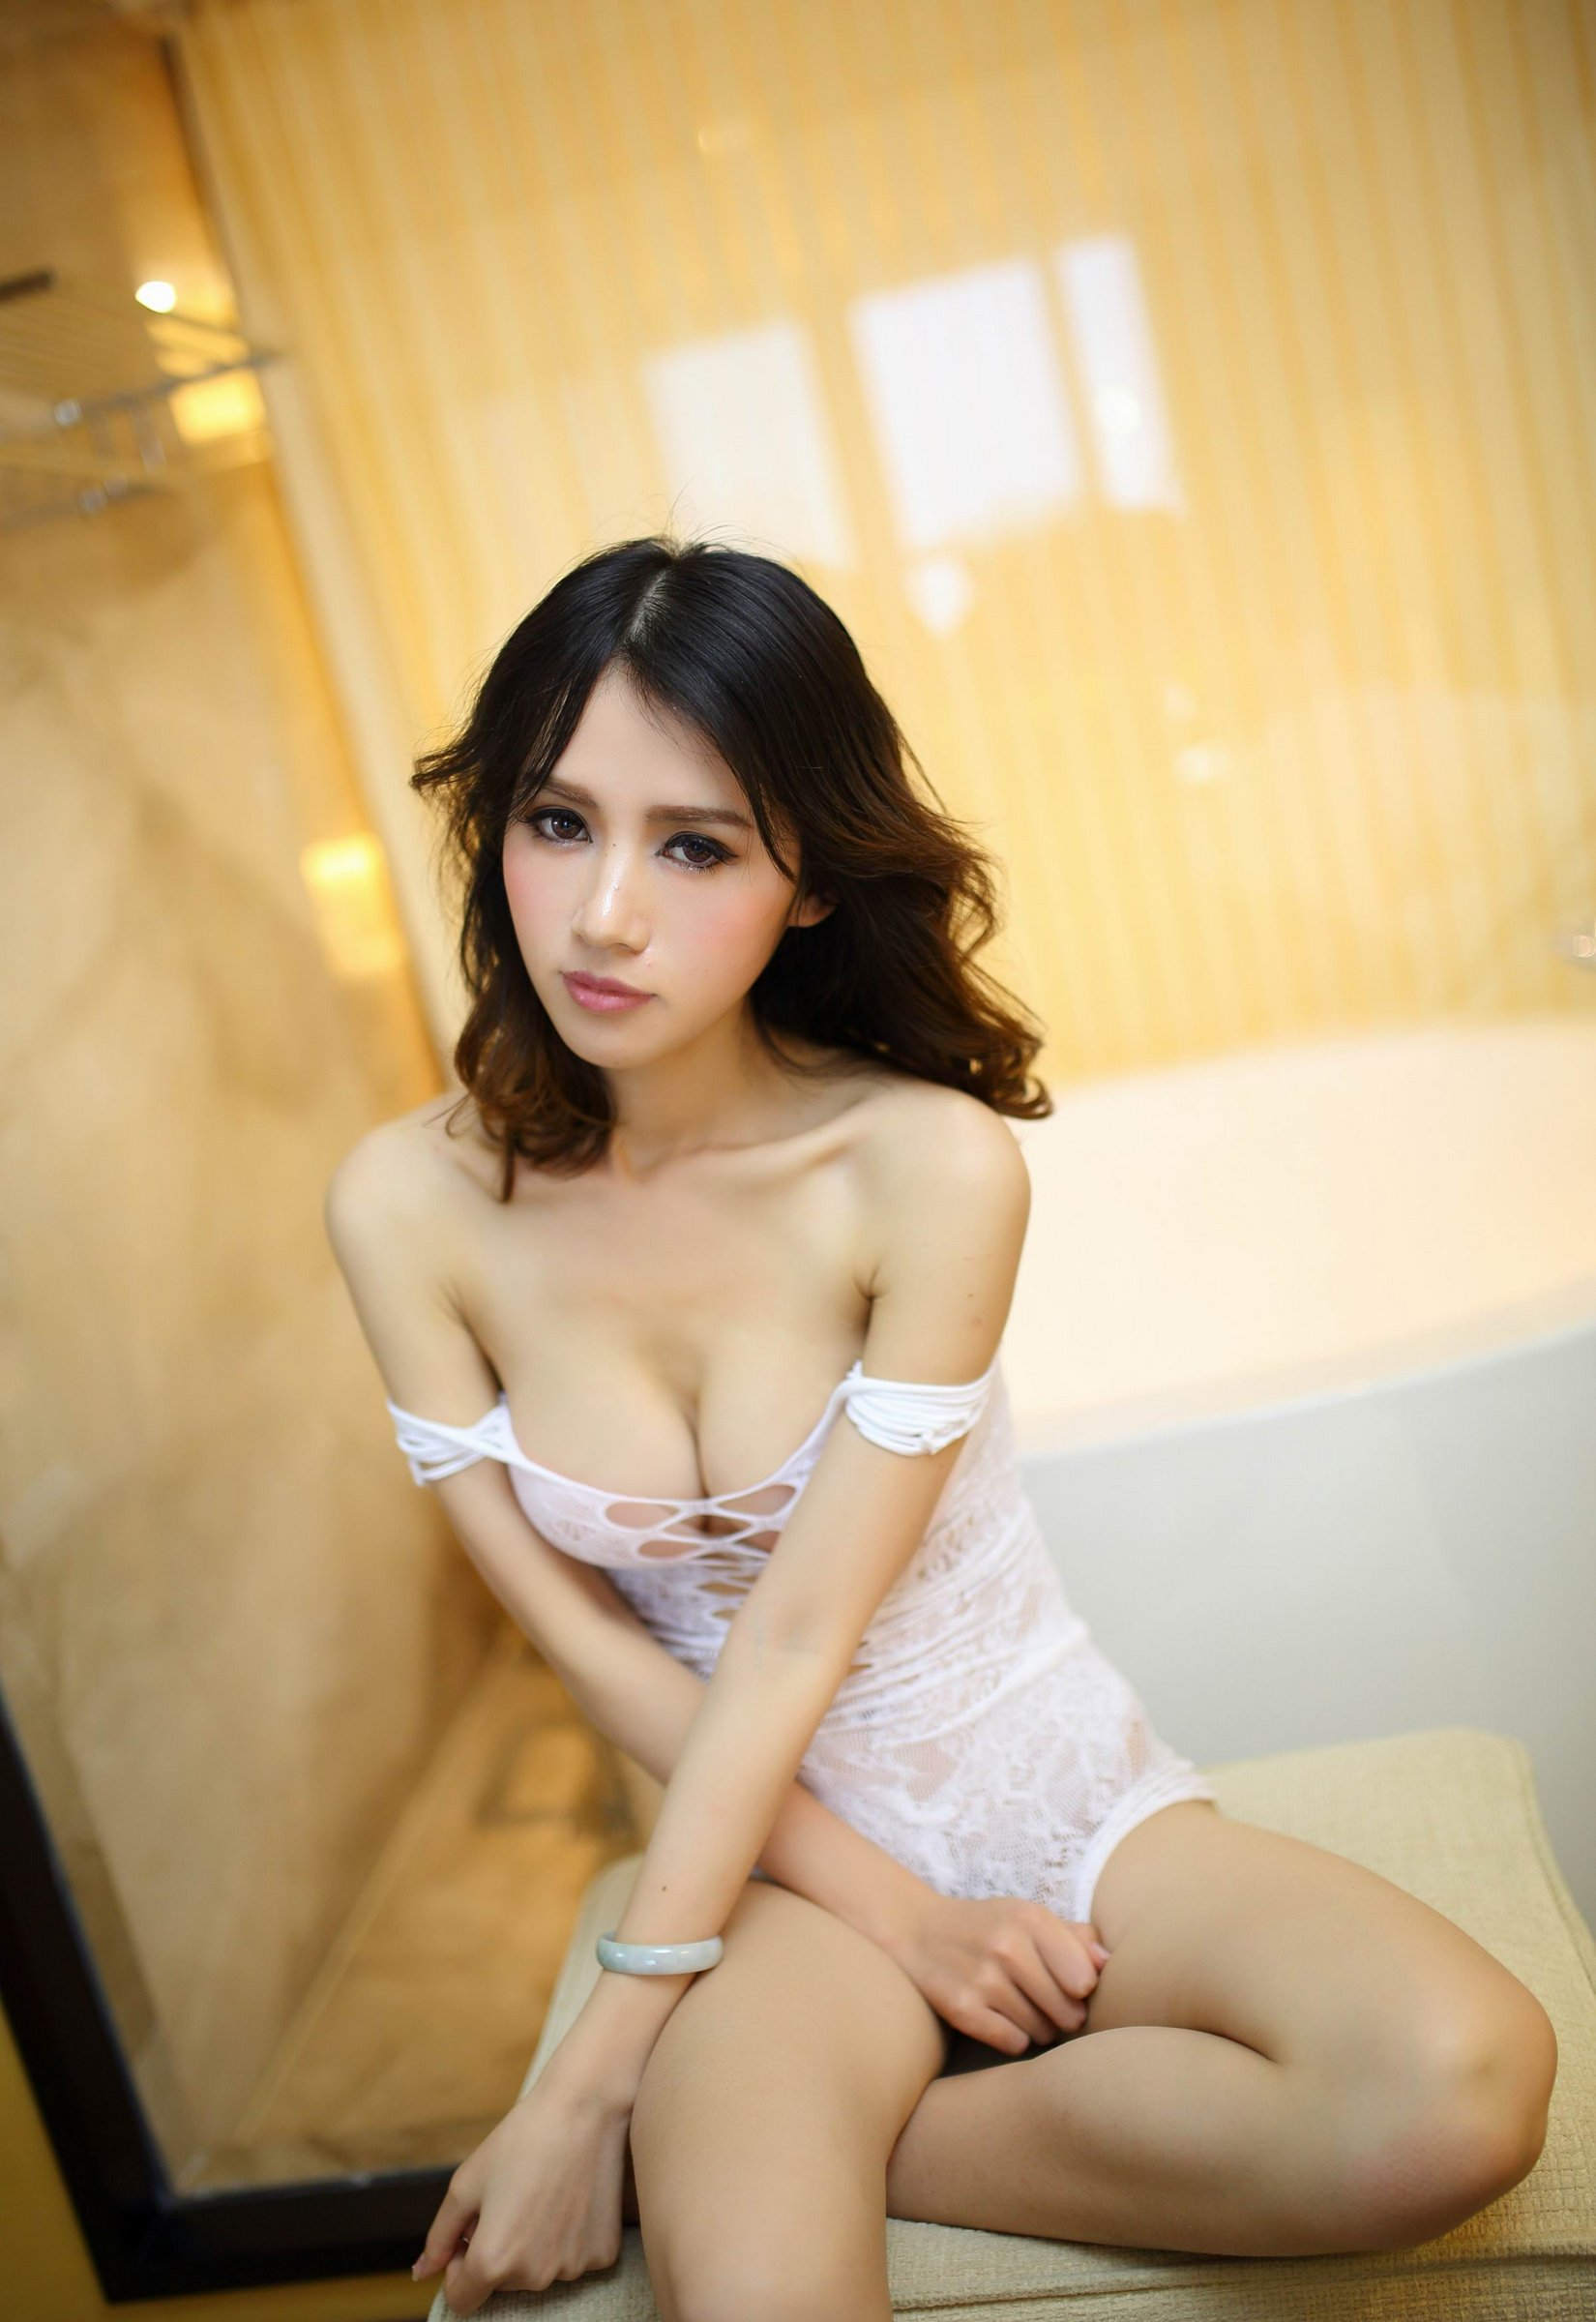 Angelxy Bunny Cosplay 清纯可爱兔女郎 Gallery | XIUREN Girls No ...